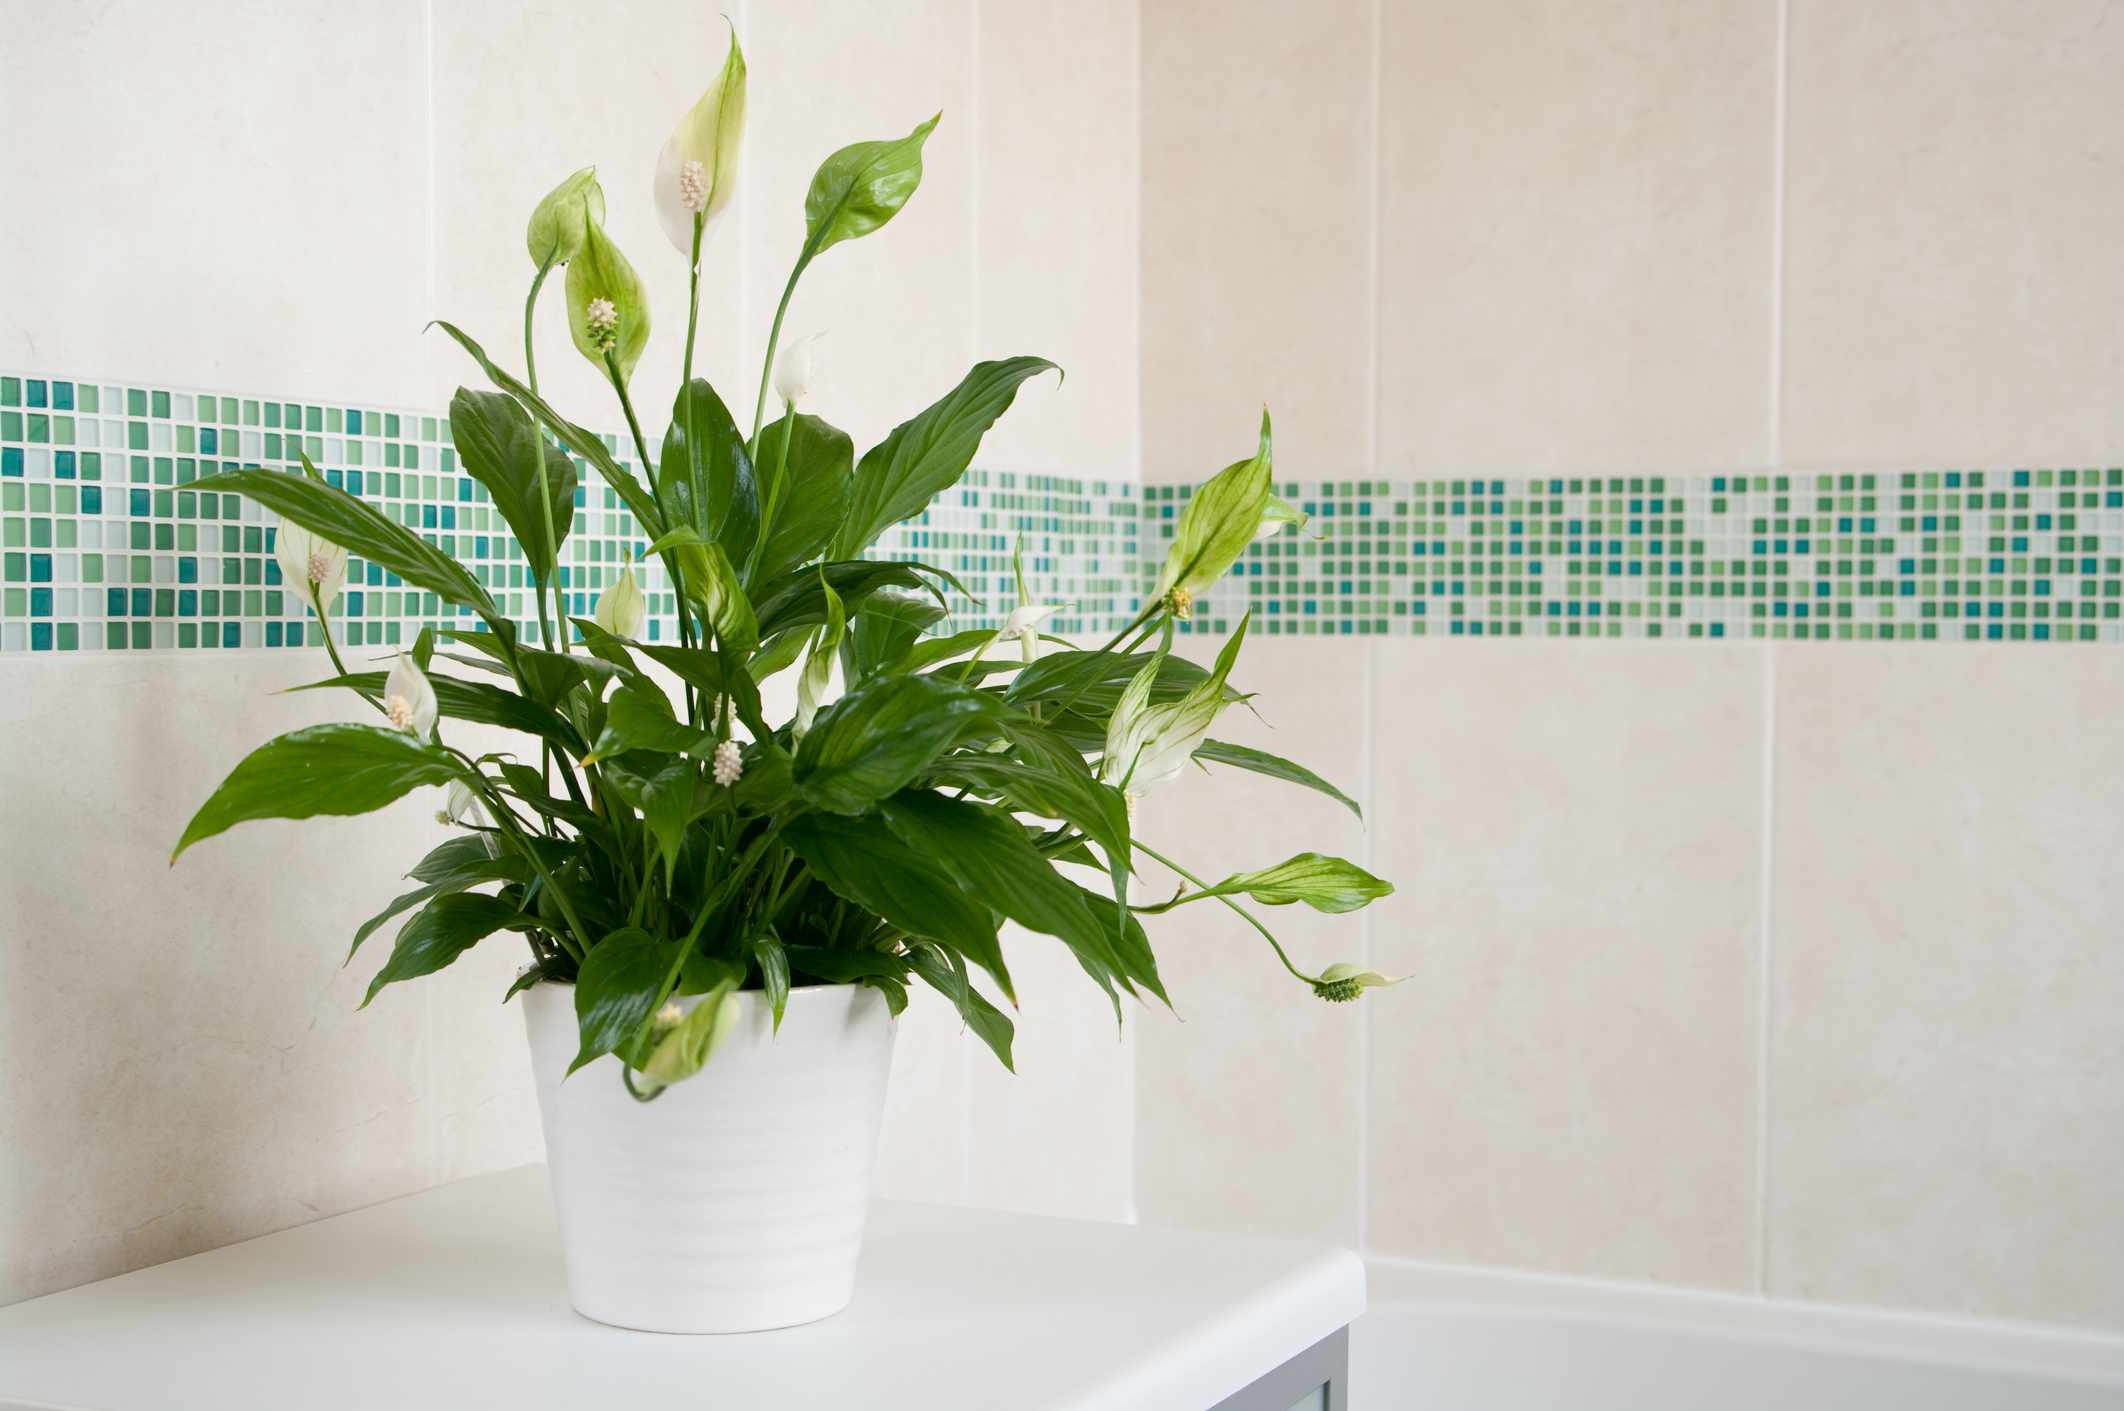 Spathiphyllum (Peace Lily) in white ceramic pot in front of mosaics of green and plain cream ceramic wall tiles.